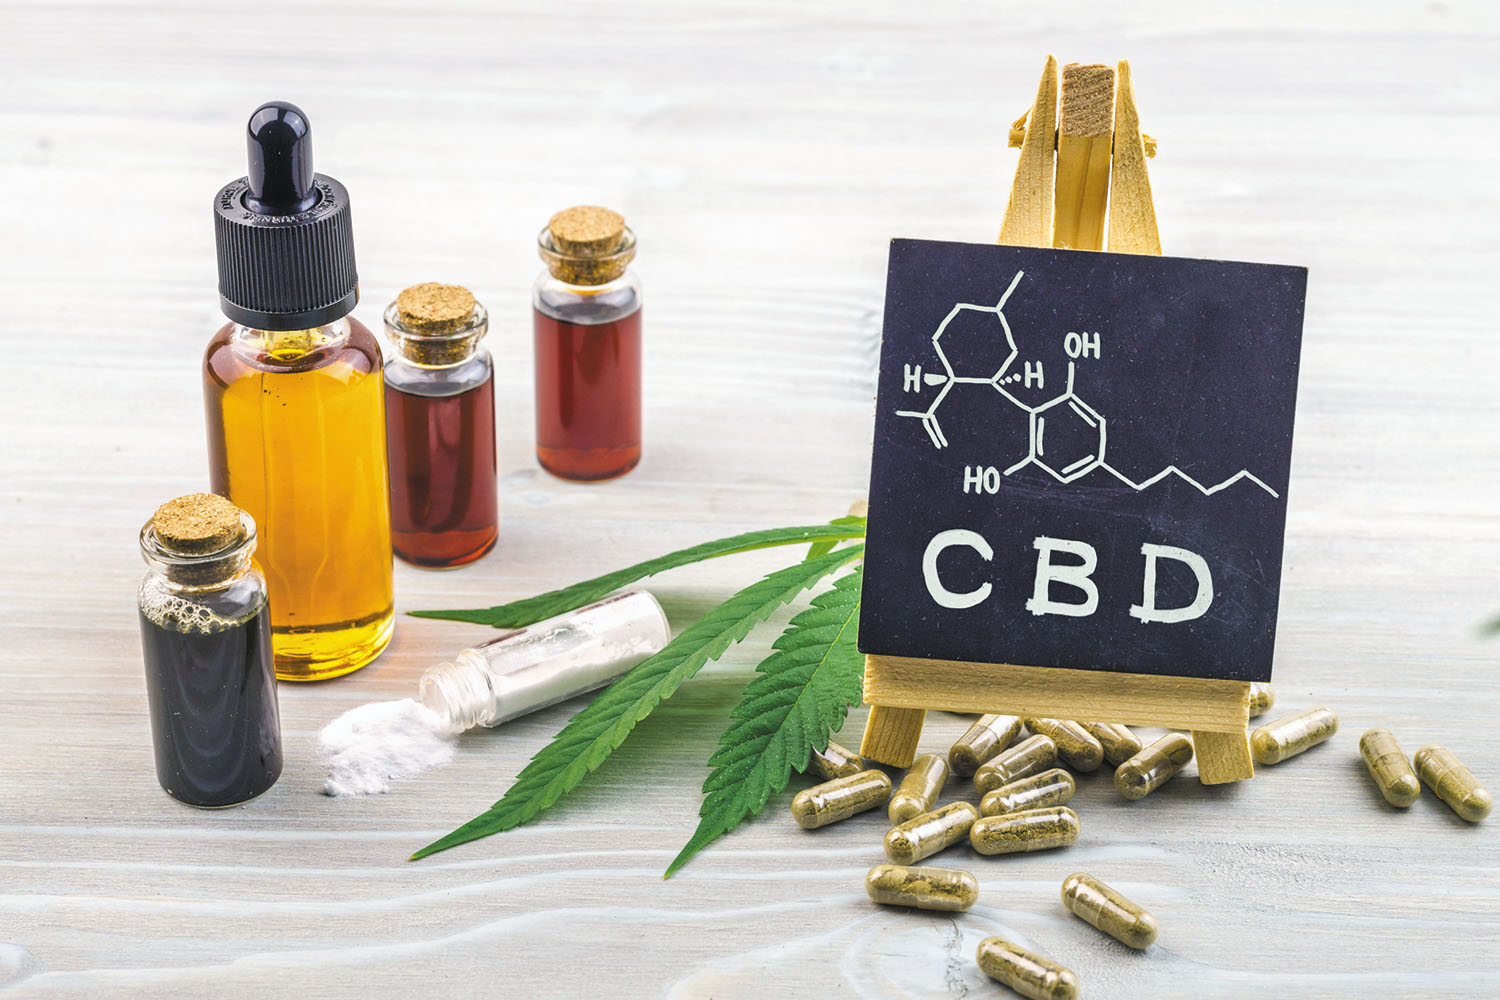 Ten Best CBD Oils For Dogs - Best Choice Reviews